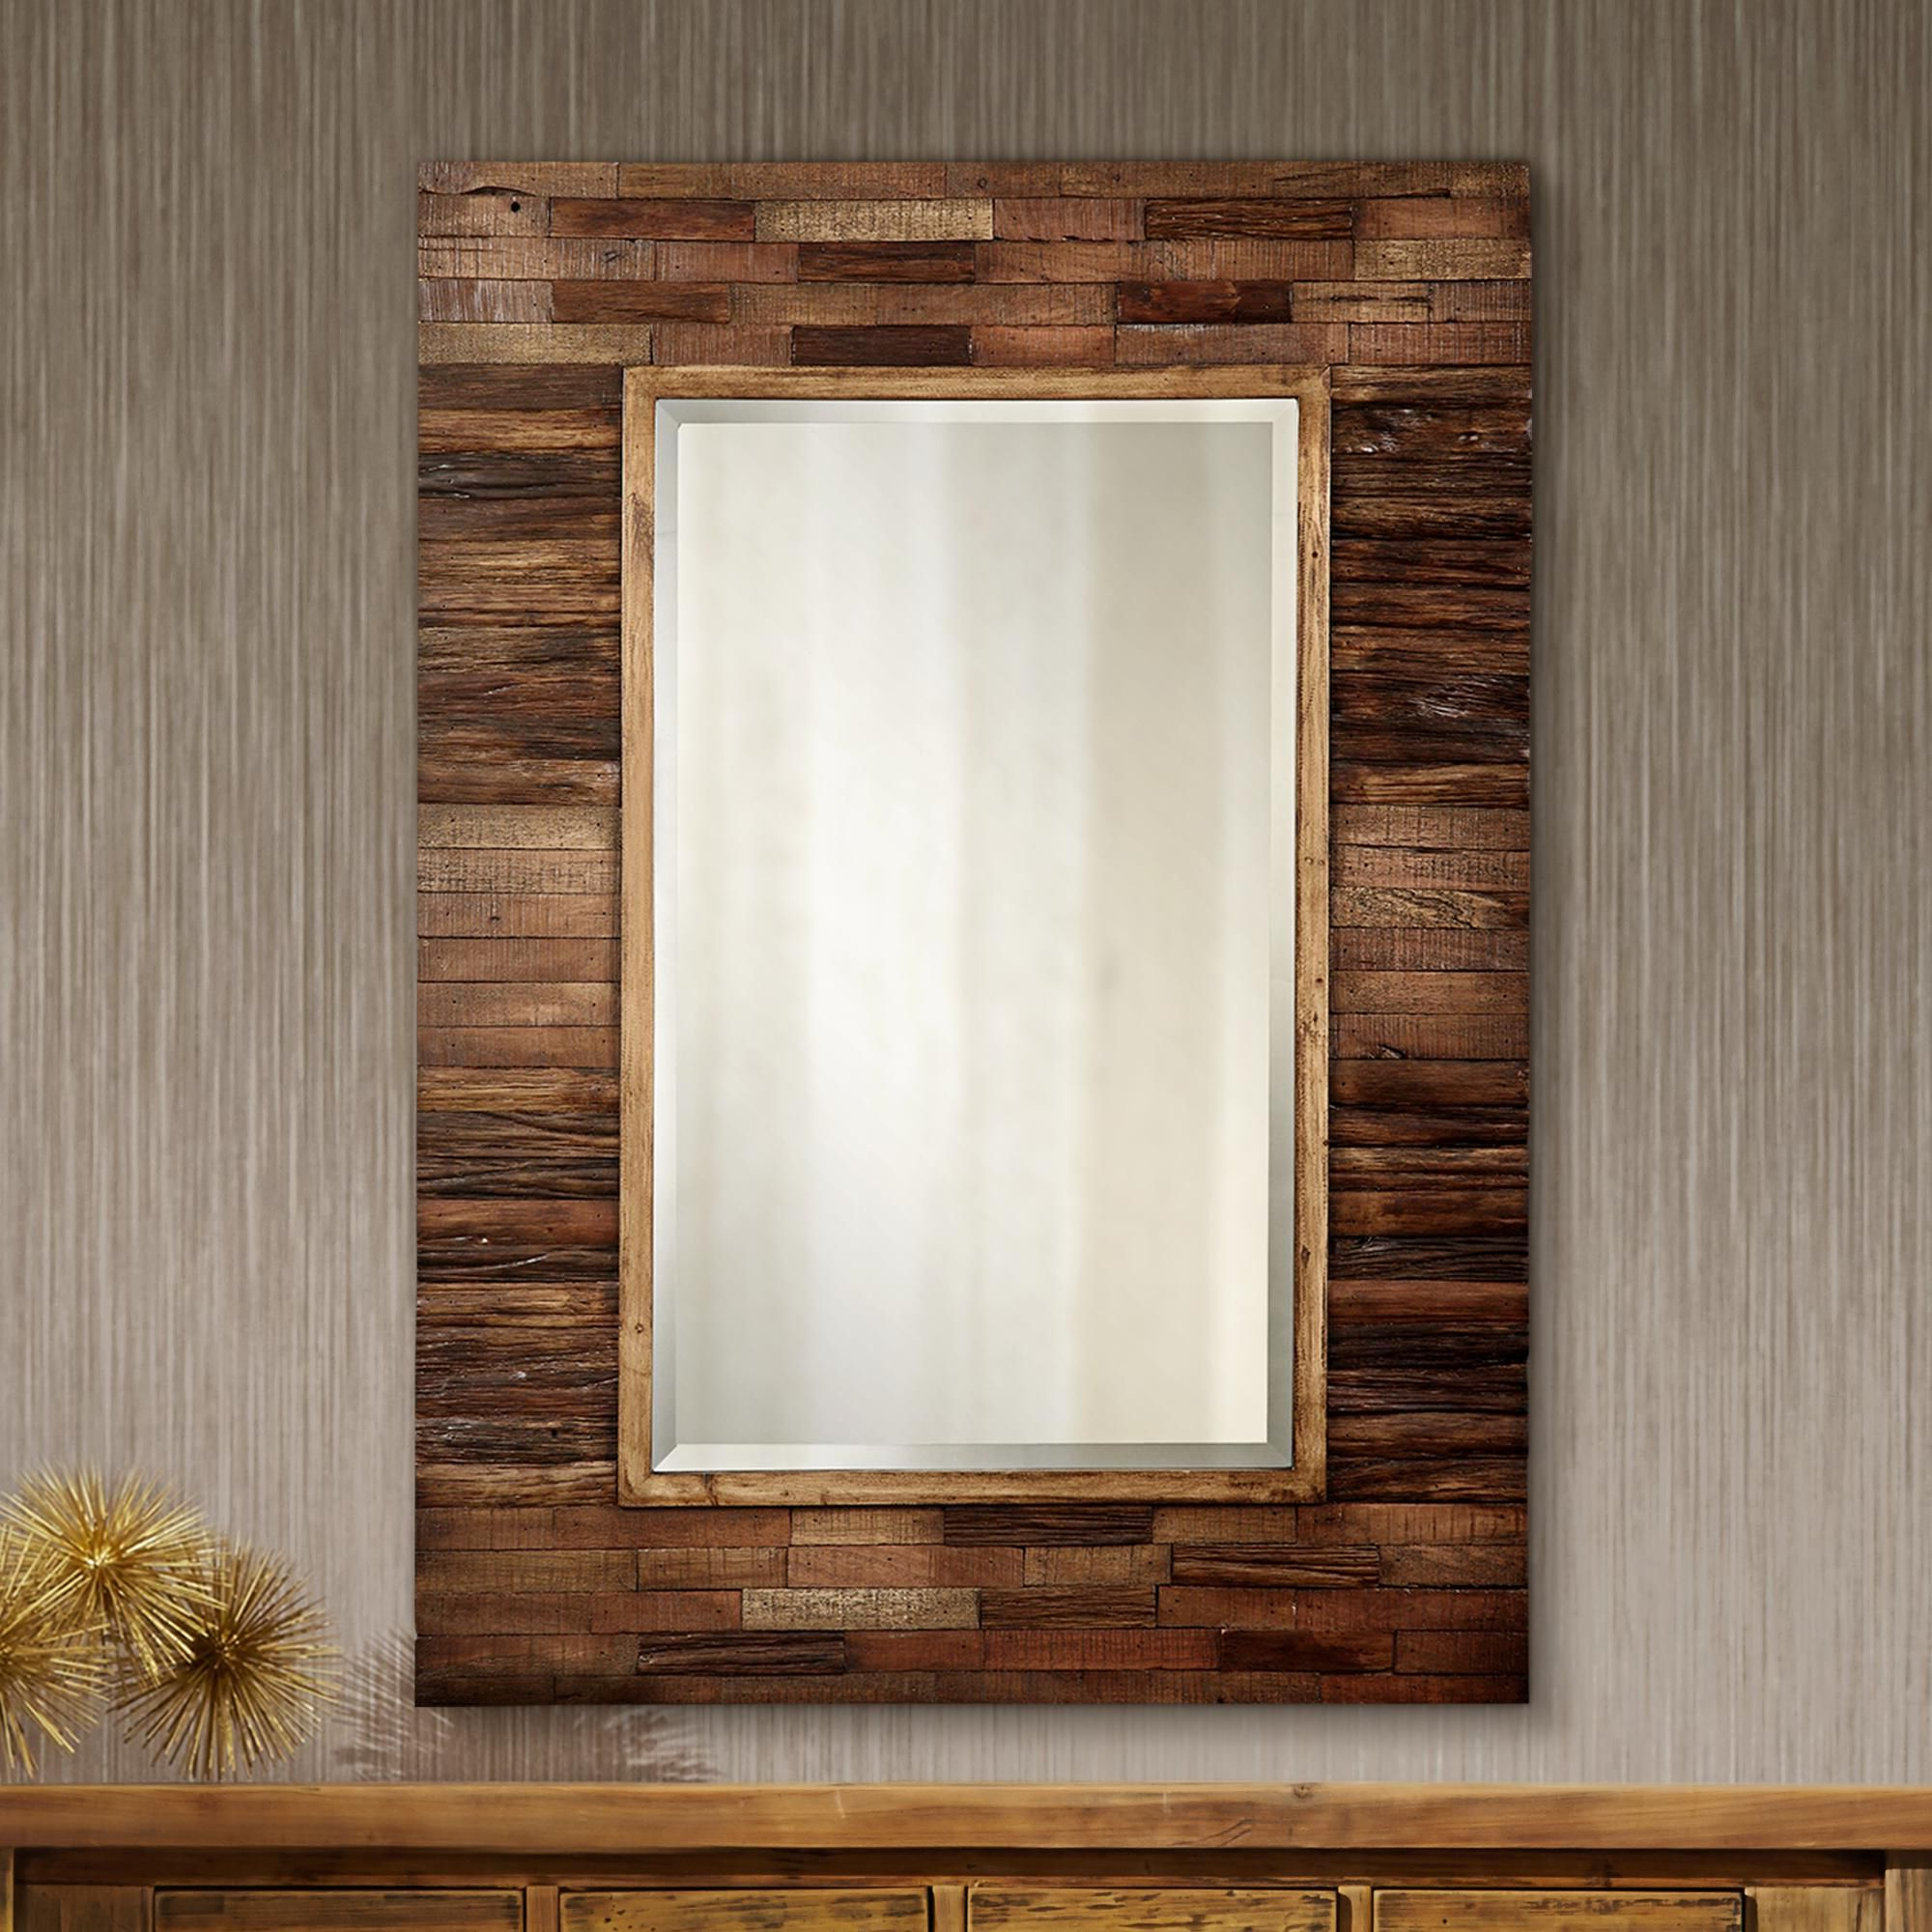 House For Booth Reclaimed Wall Mirrors Accent (View 8 of 20)